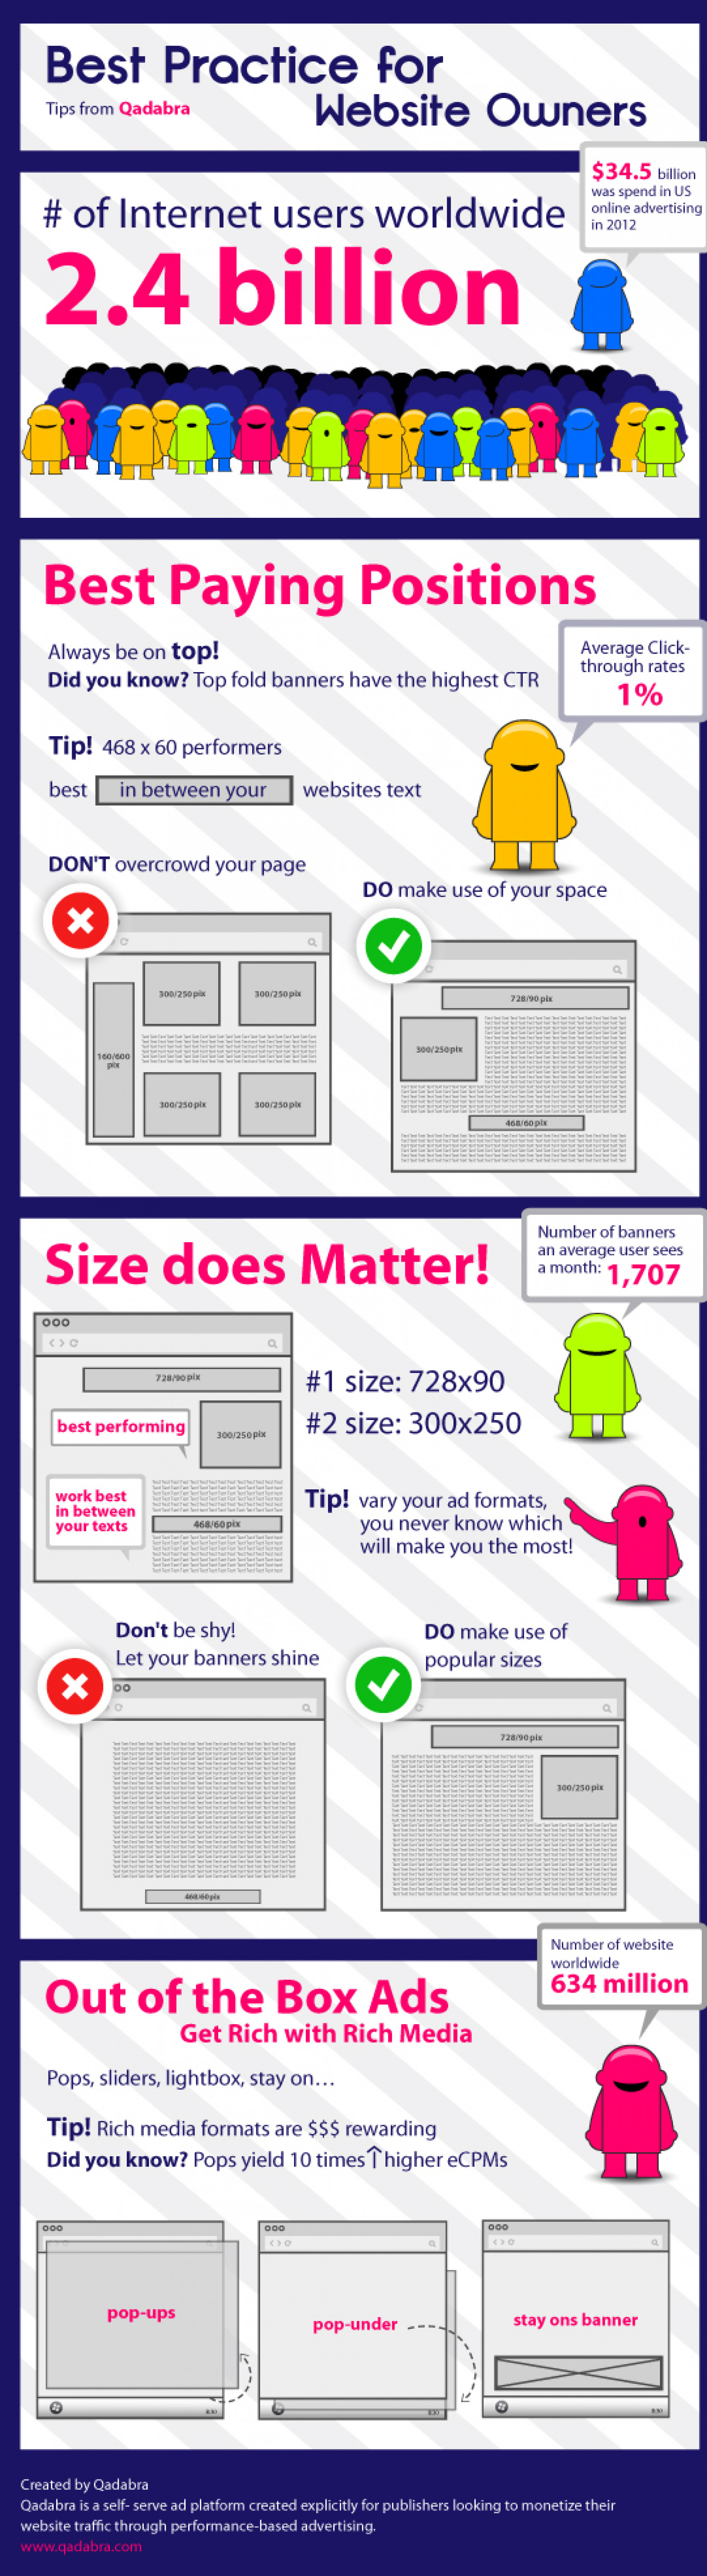 Best Practice for Website Owners Infographic